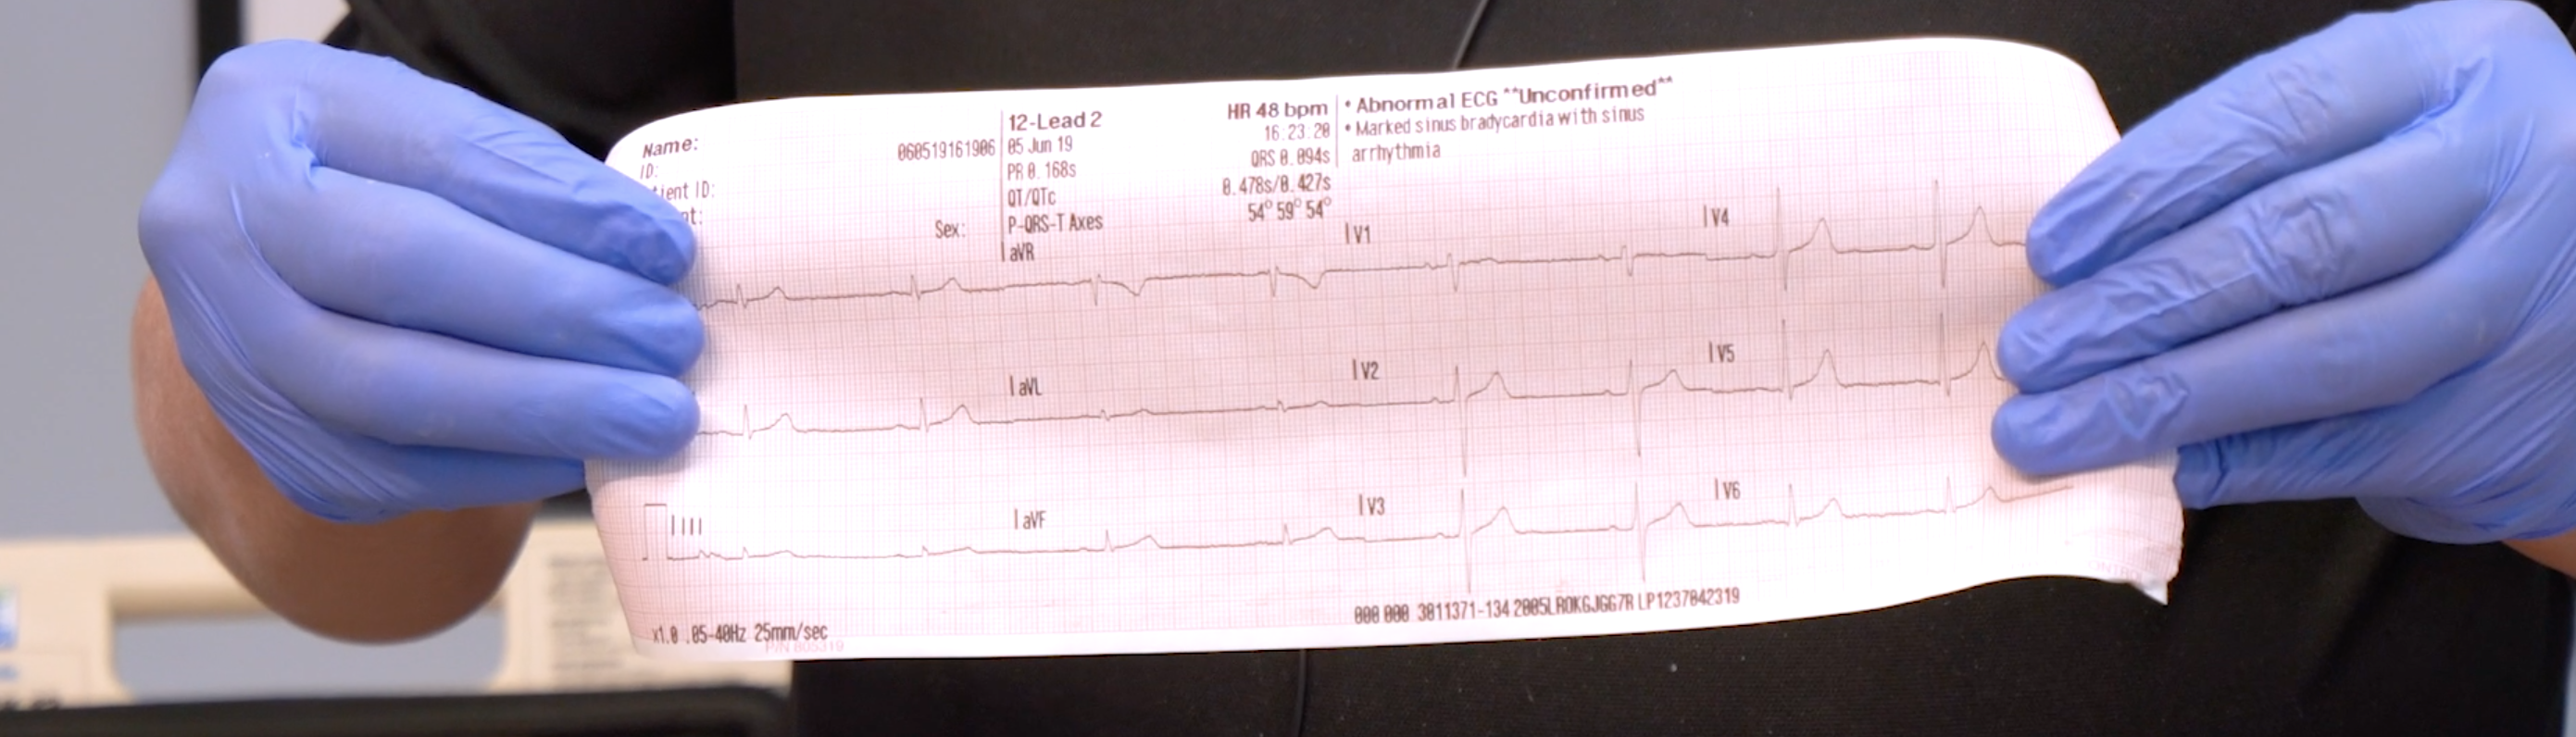 A diagnostic quality EKG from 3 views of the heart